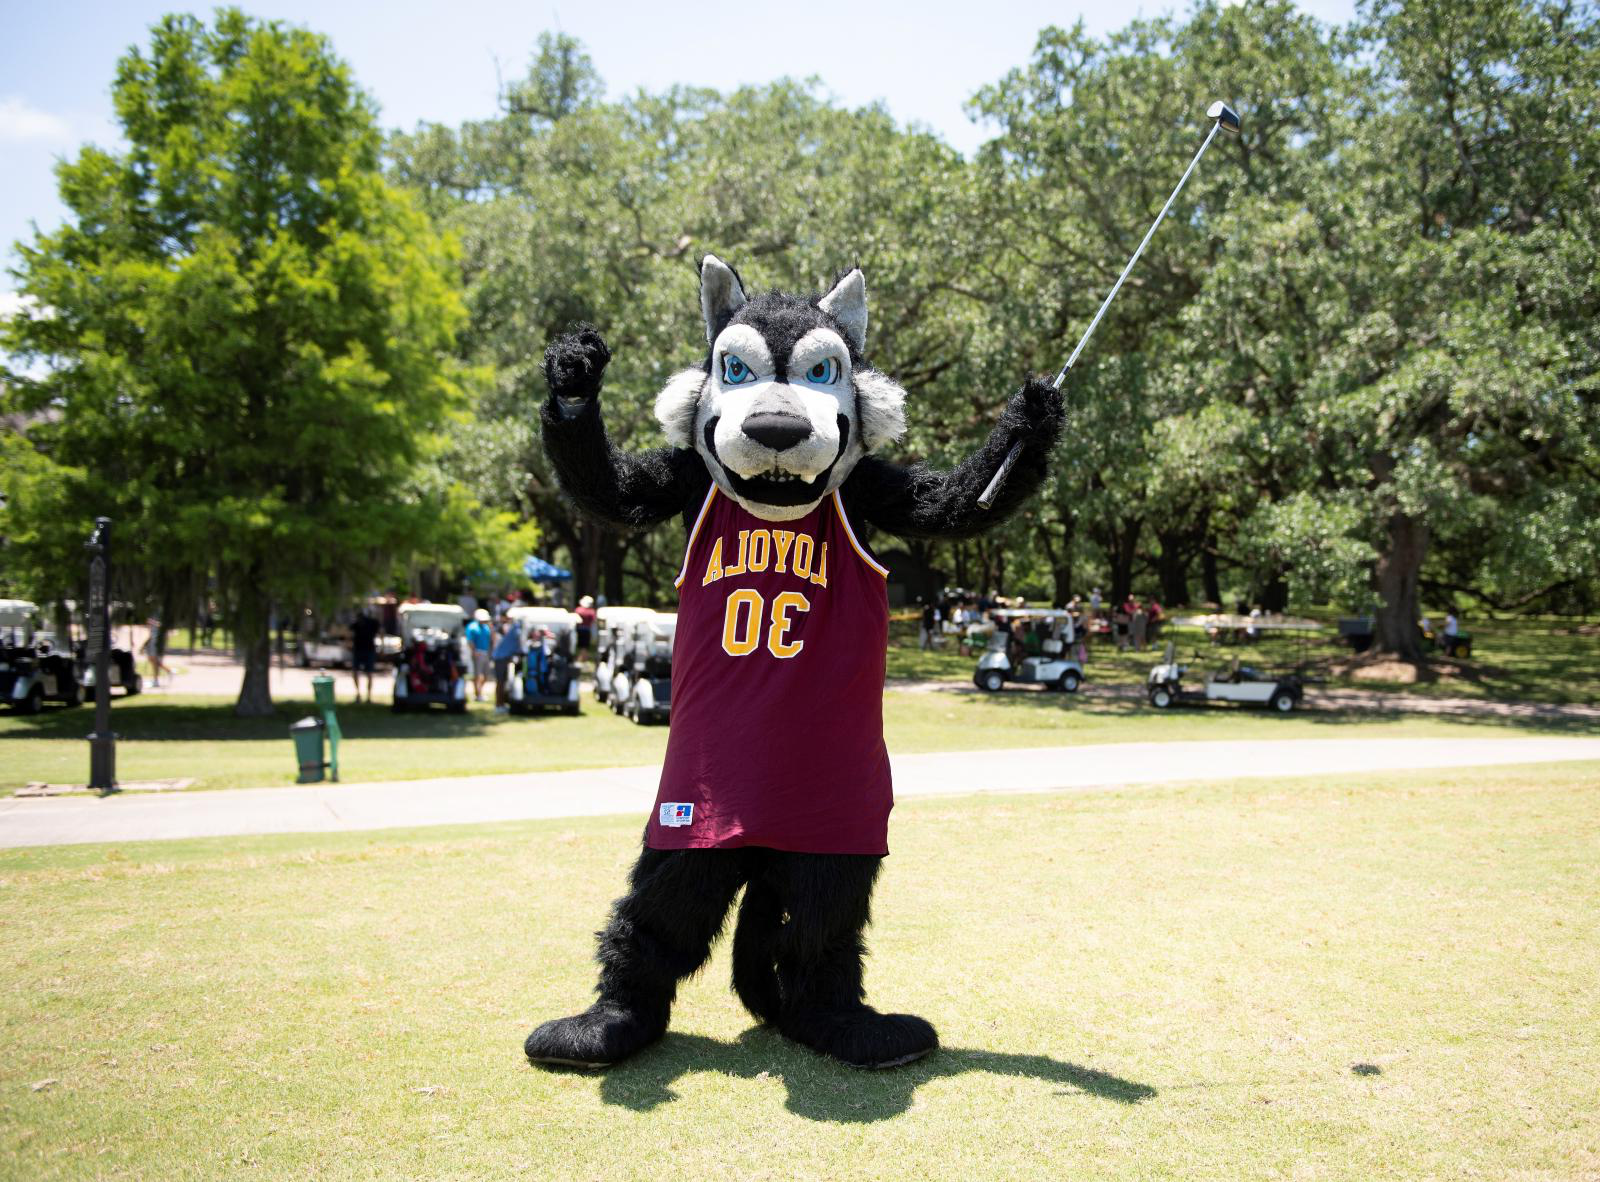 Photo of Loyola mascot golfing